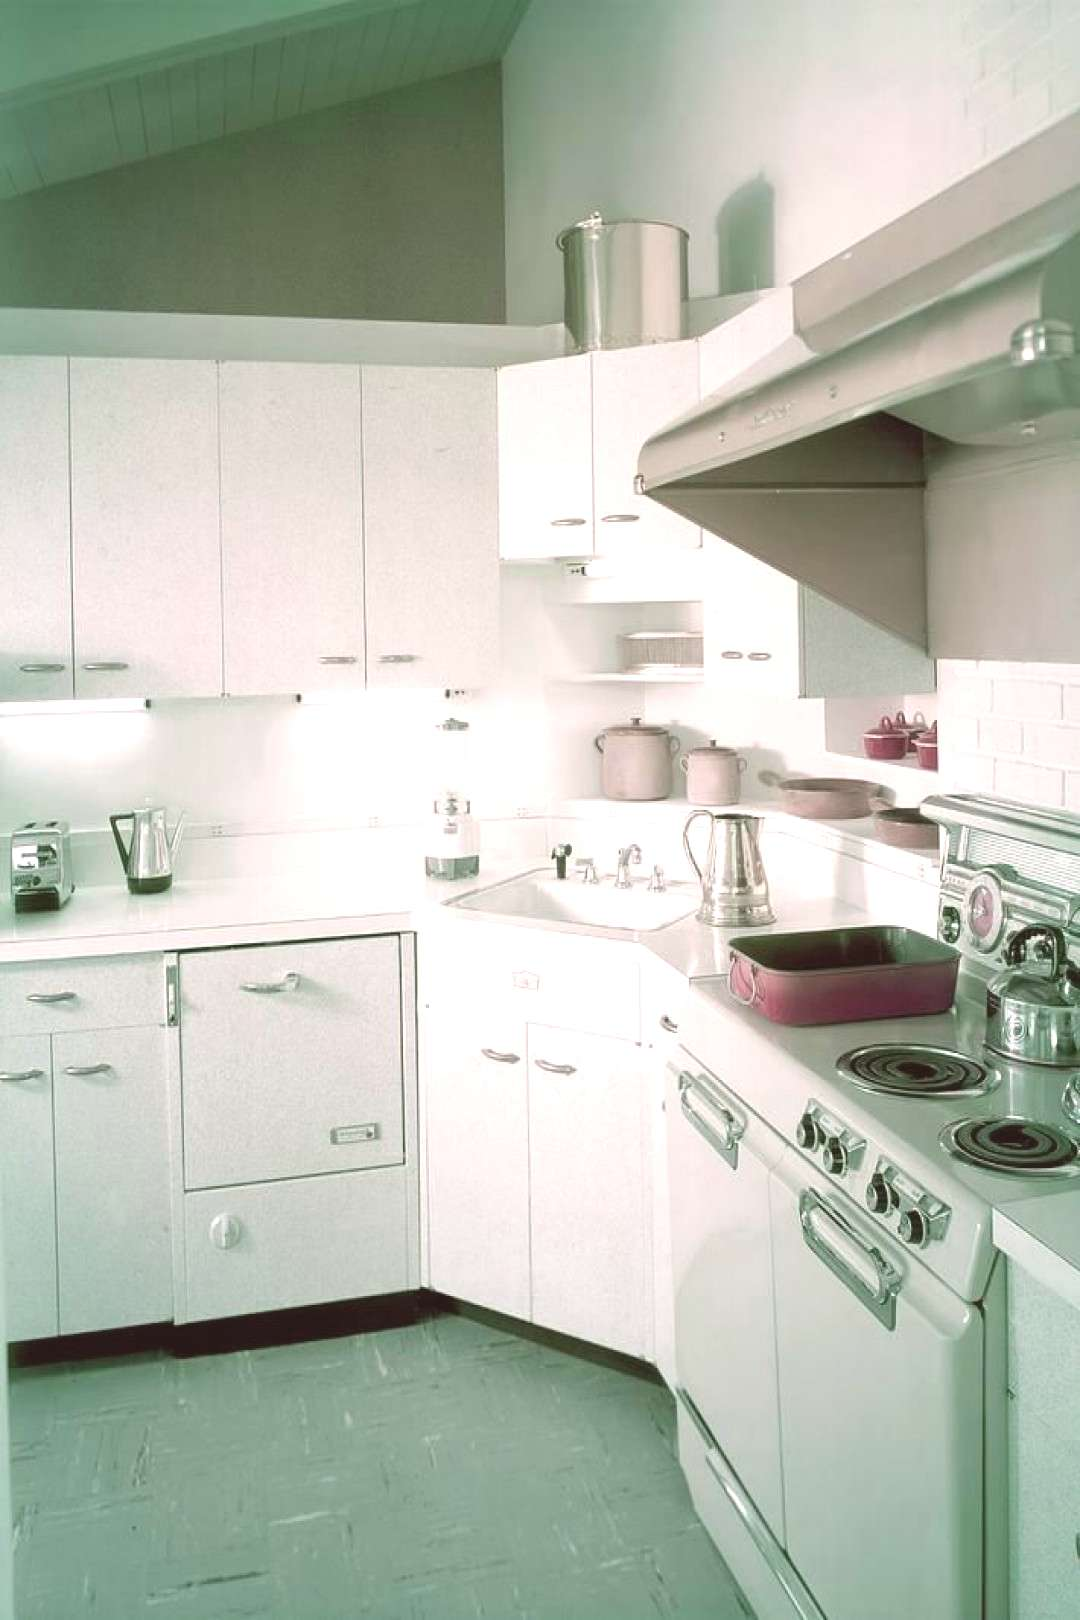 Photograph - A Retro Kitchen by Haanel Cassidy ,